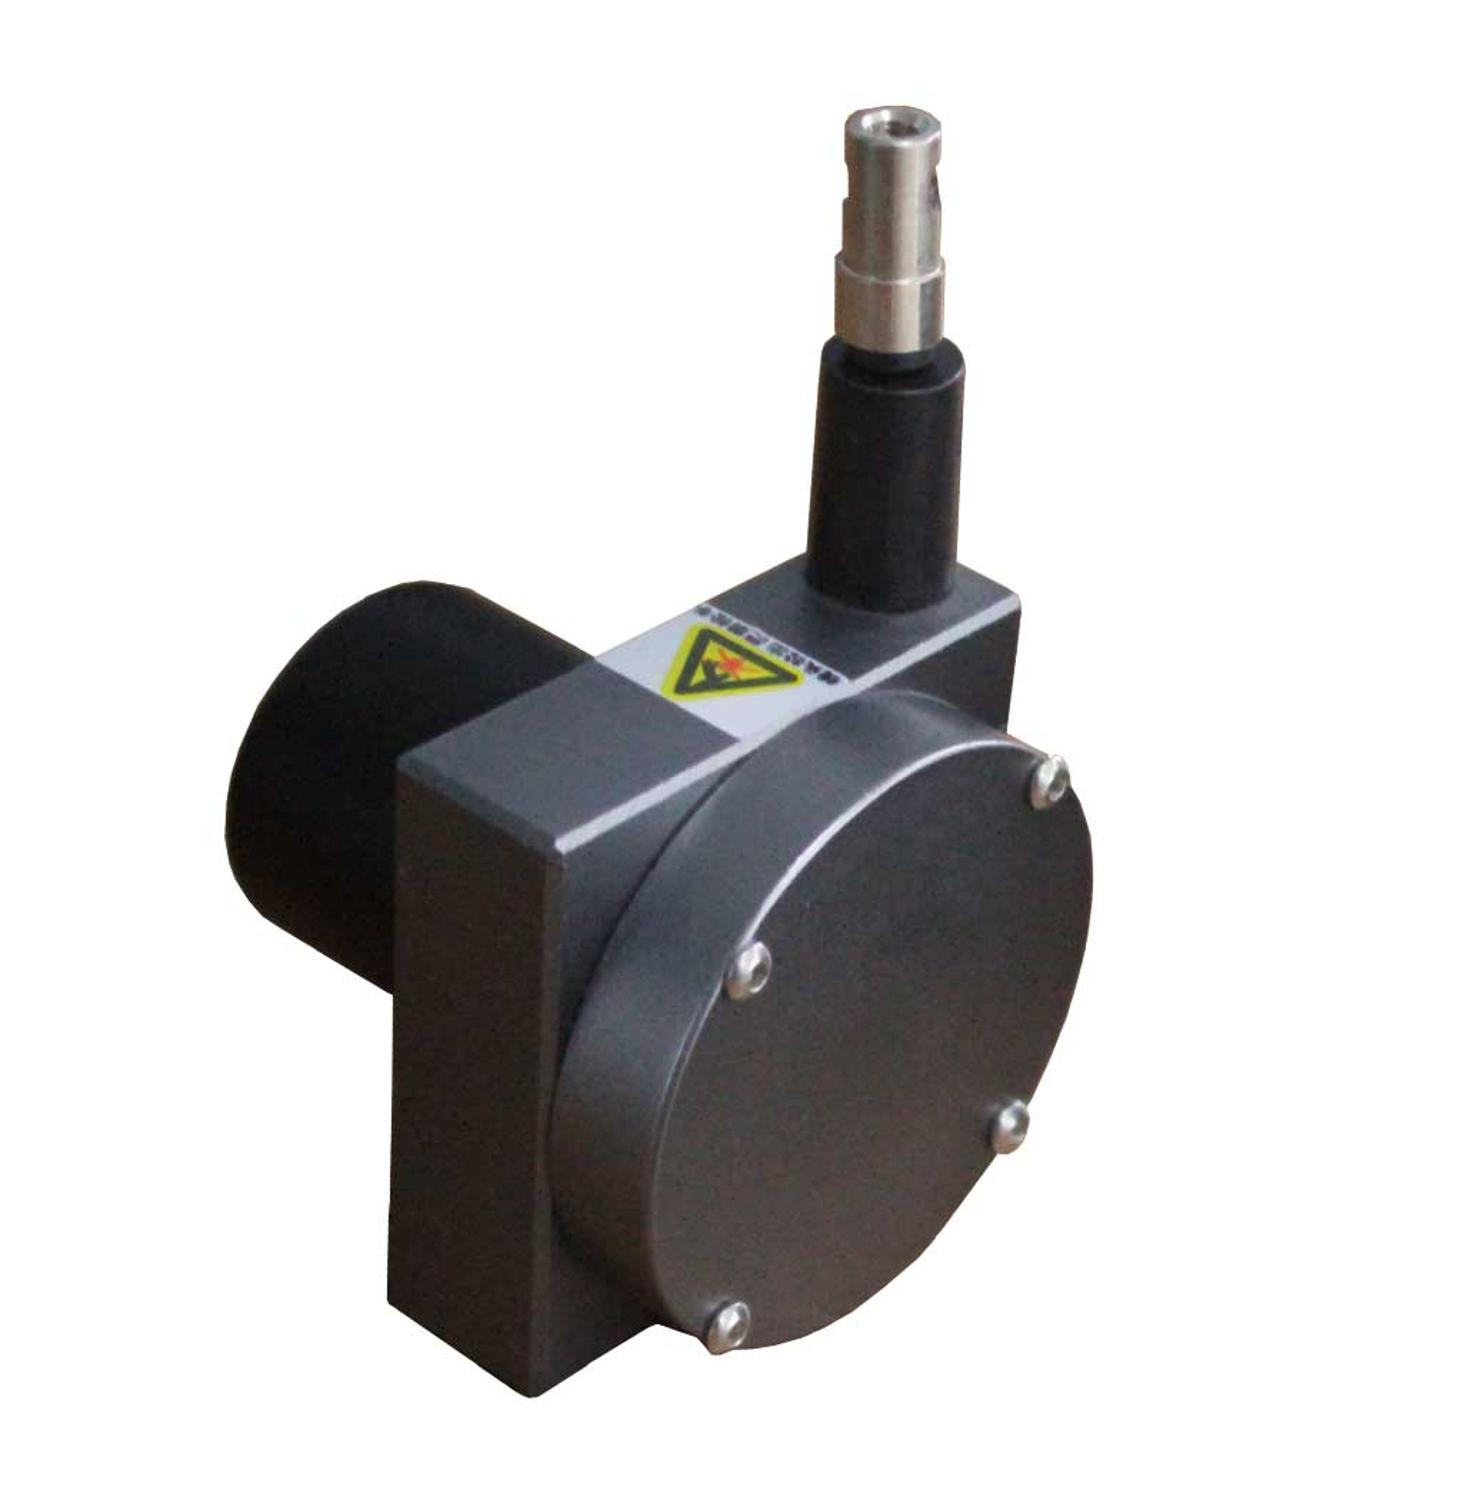 WXY60-LWXY80-L Drawstring Displacement Cable Sensor Encoder Gate Opener High Precision Conventional Resistance Voltage Signal